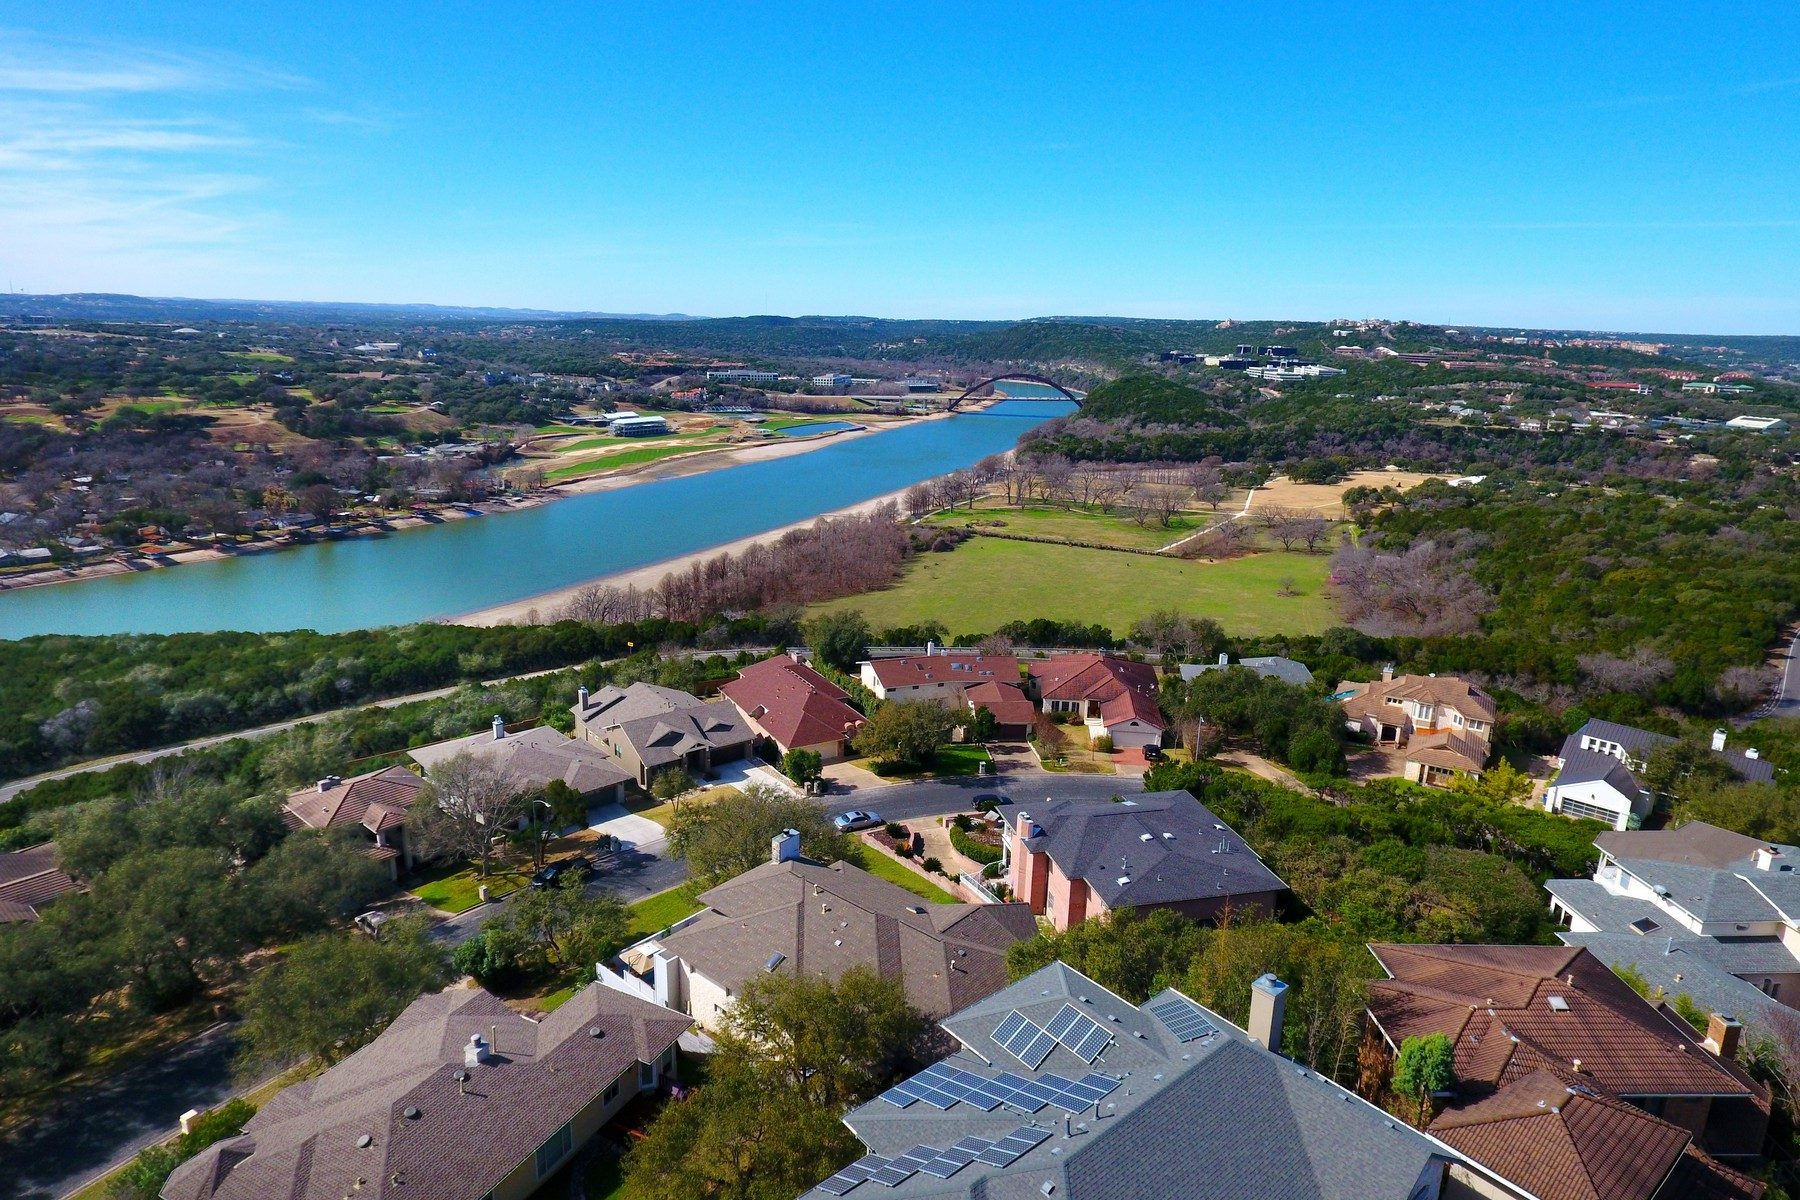 Single Family Home for Sale at Northwest Hills Contemporary with Pool and Views 5823 Westslope Dr Austin, Texas 78731 United States